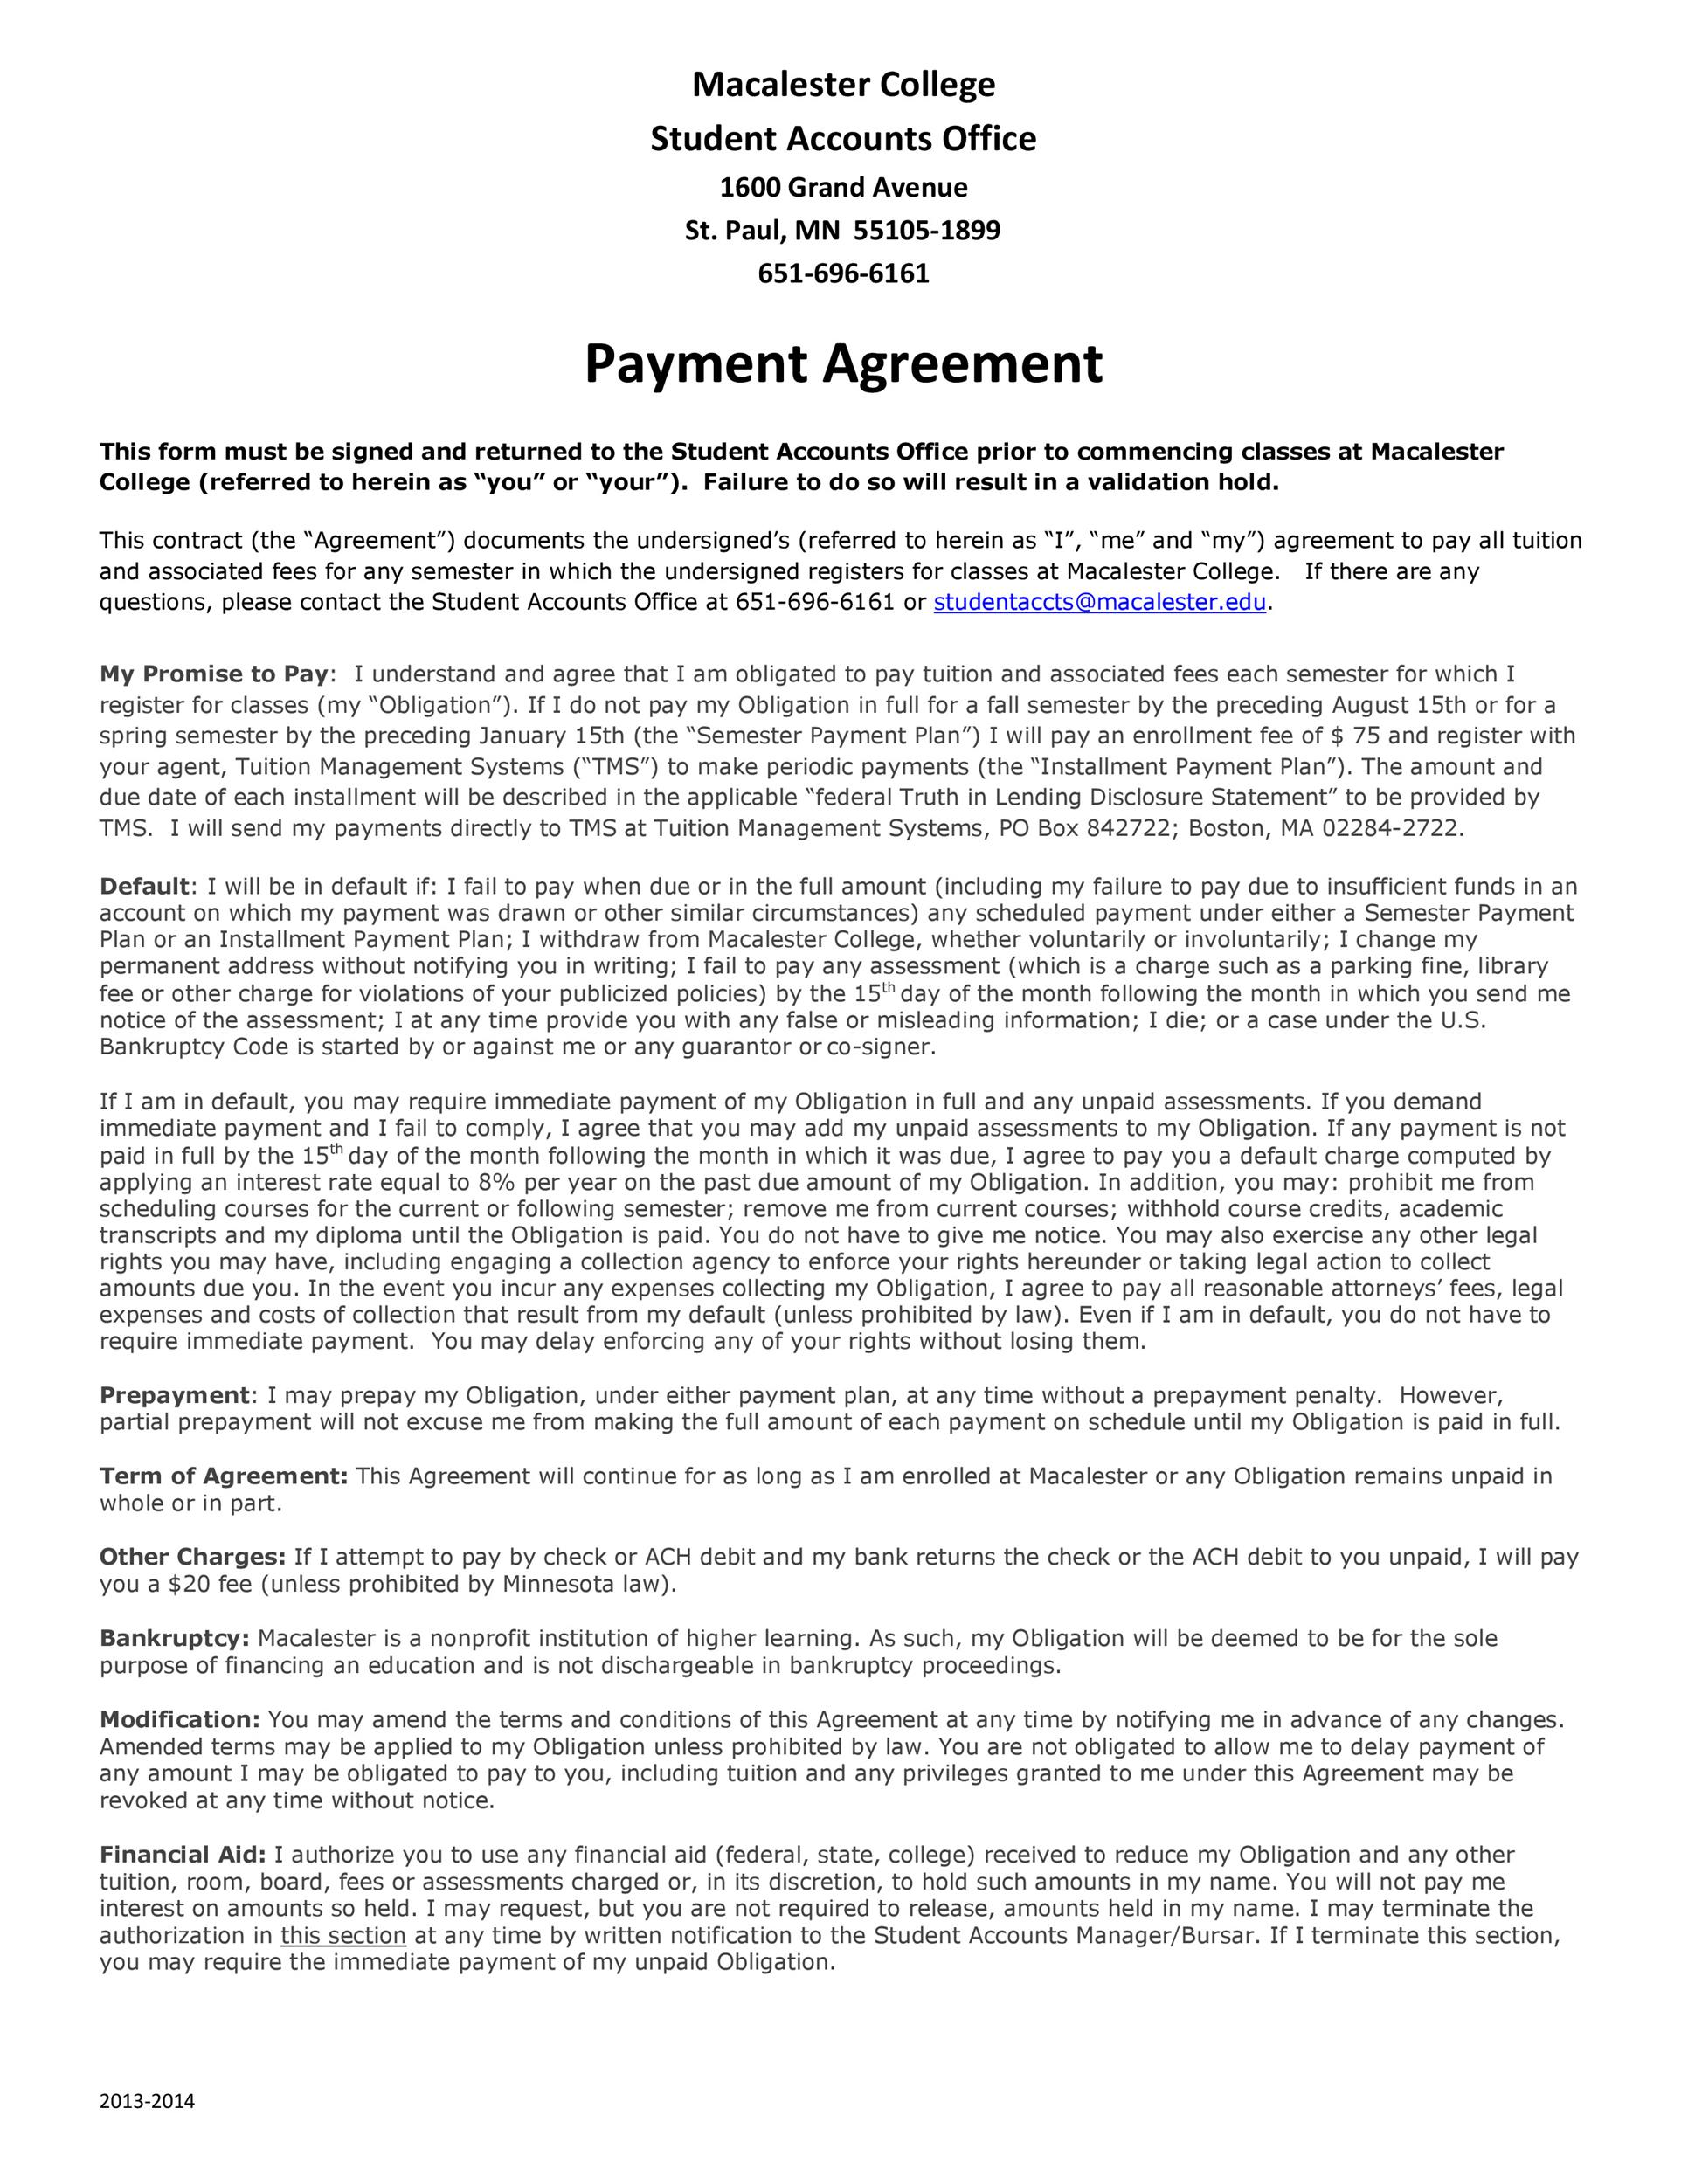 line of credit agreement template free